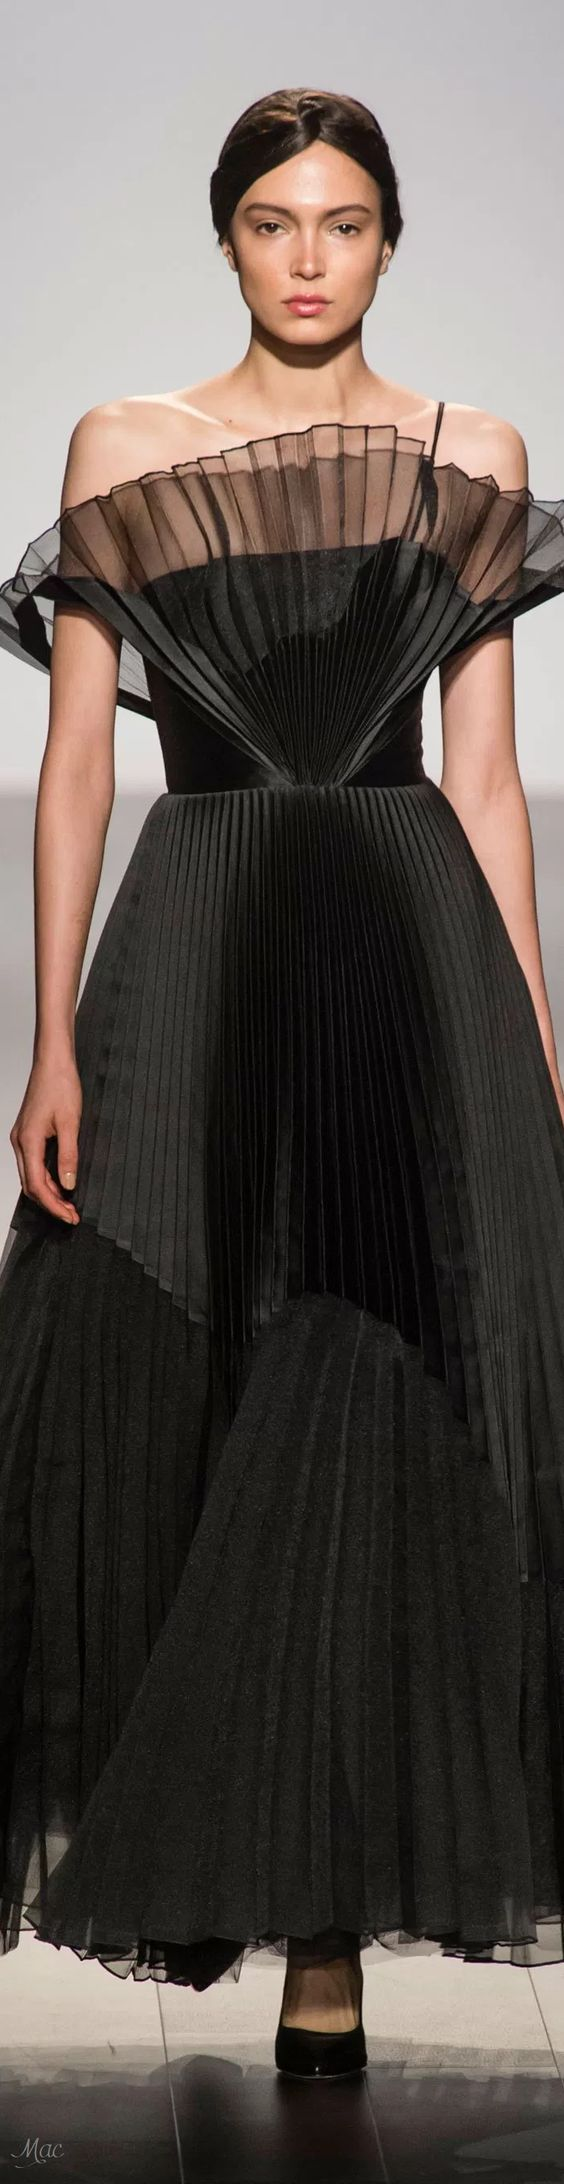 Spring 2018 RTW John Paul Ataker Occasion Dresses, dress, clothe, women's fashion, outfit inspiration, pretty clothes, shoes, bags and accessories  #lagalove